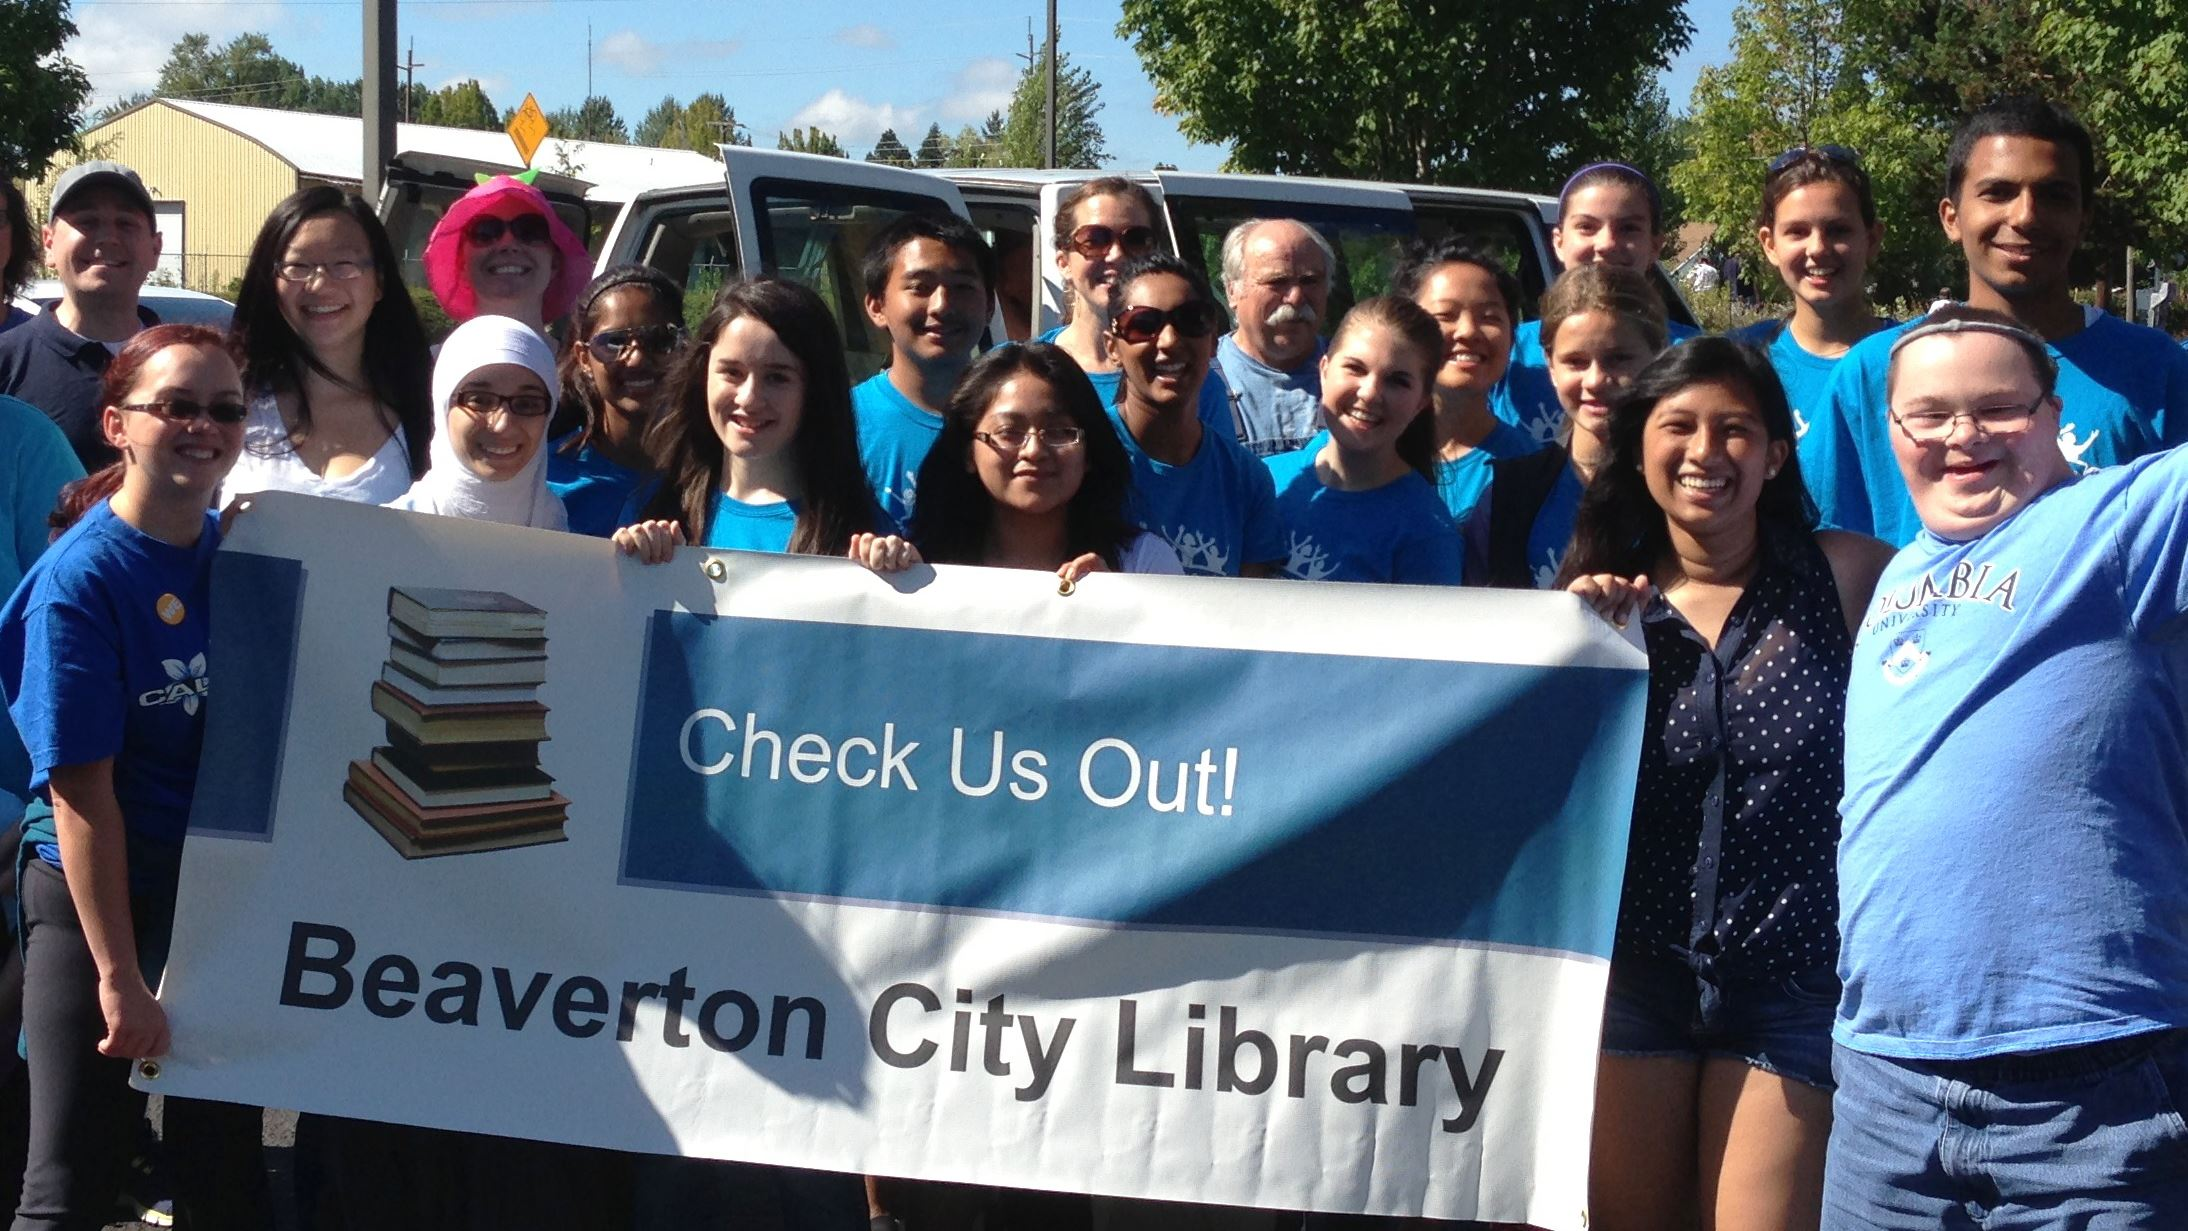 Photo of a group of people smiling and holding a banner promoting Beaverton City Library.